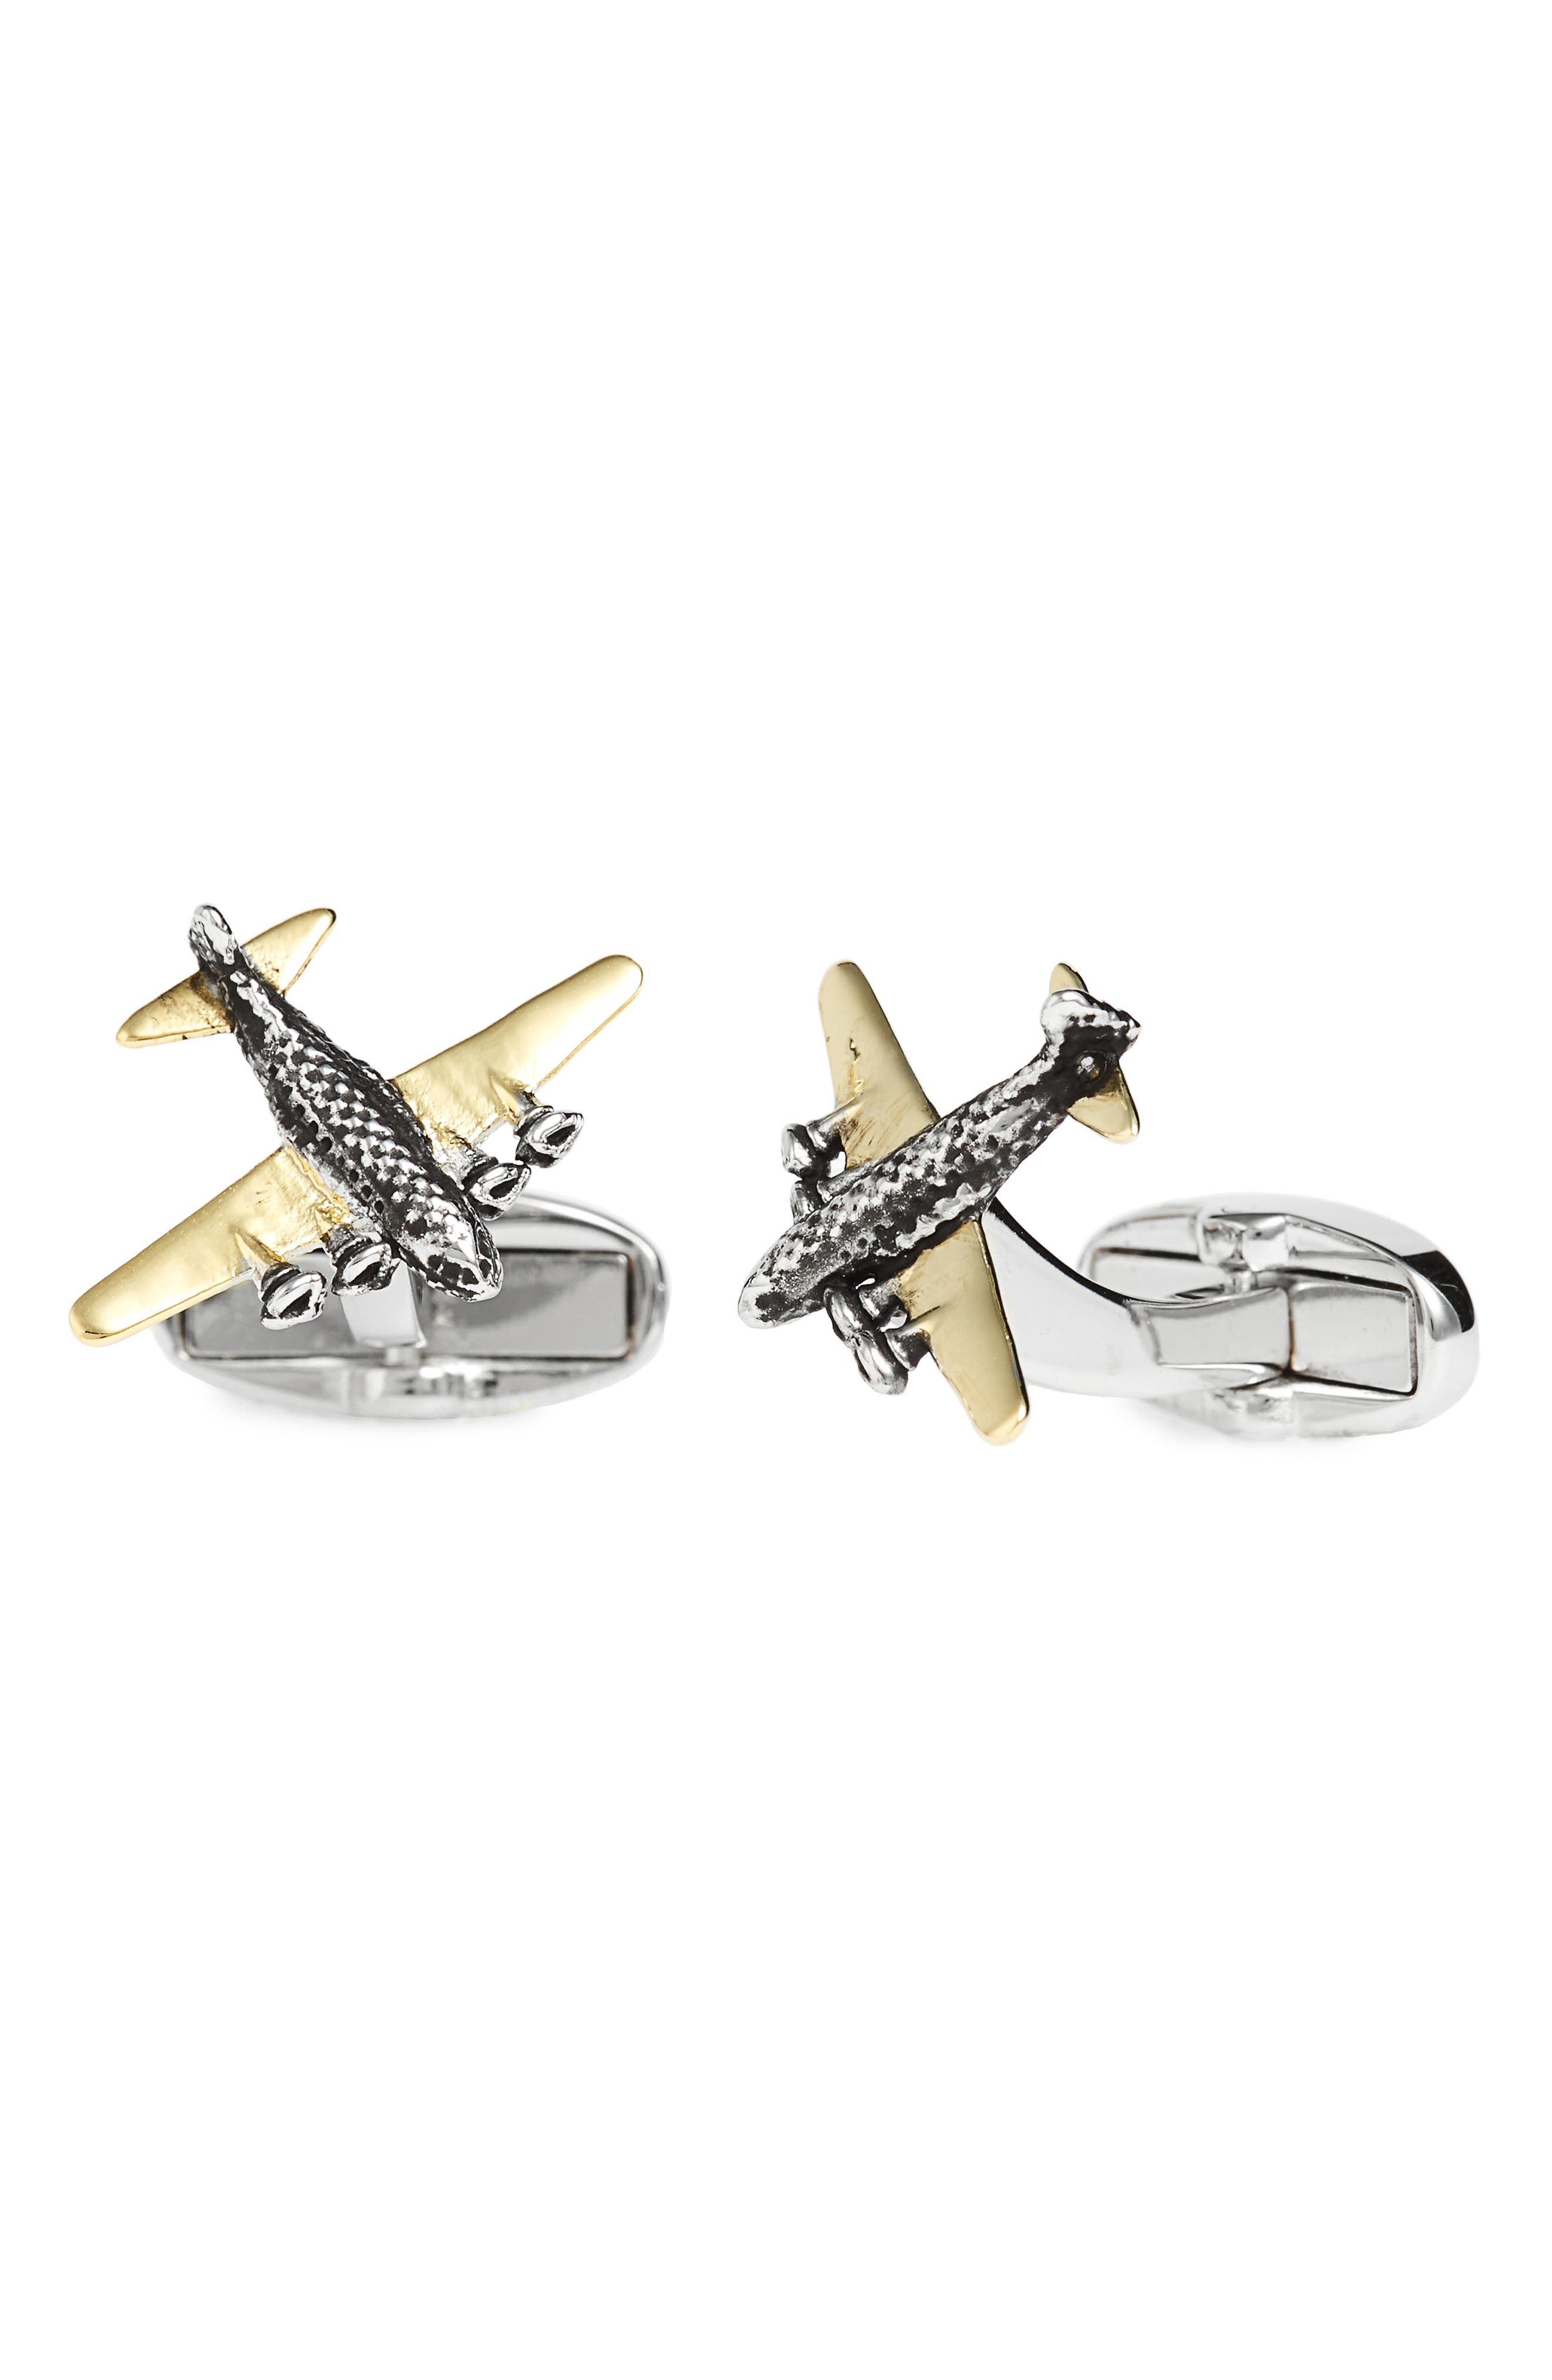 Airplane Cuff Links,                         Main,                         color,